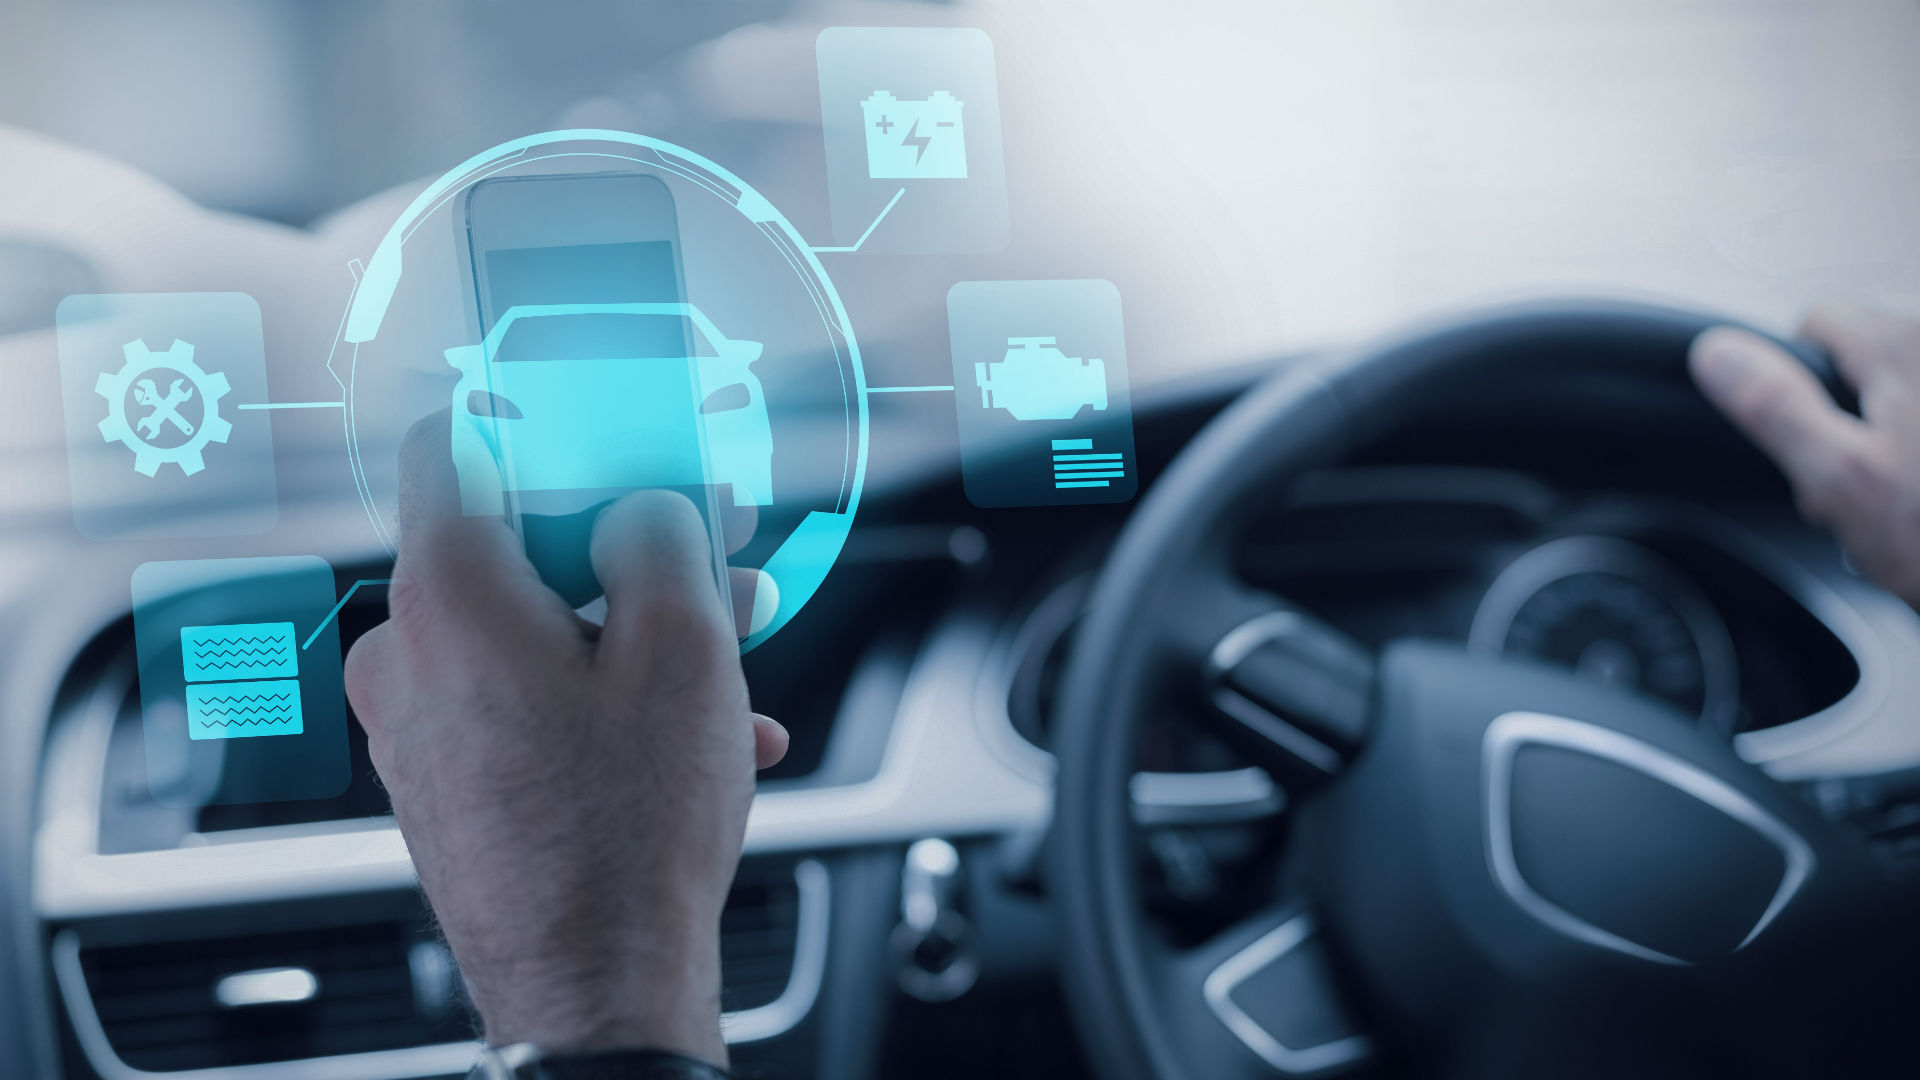 Connected cars are computers on wheels